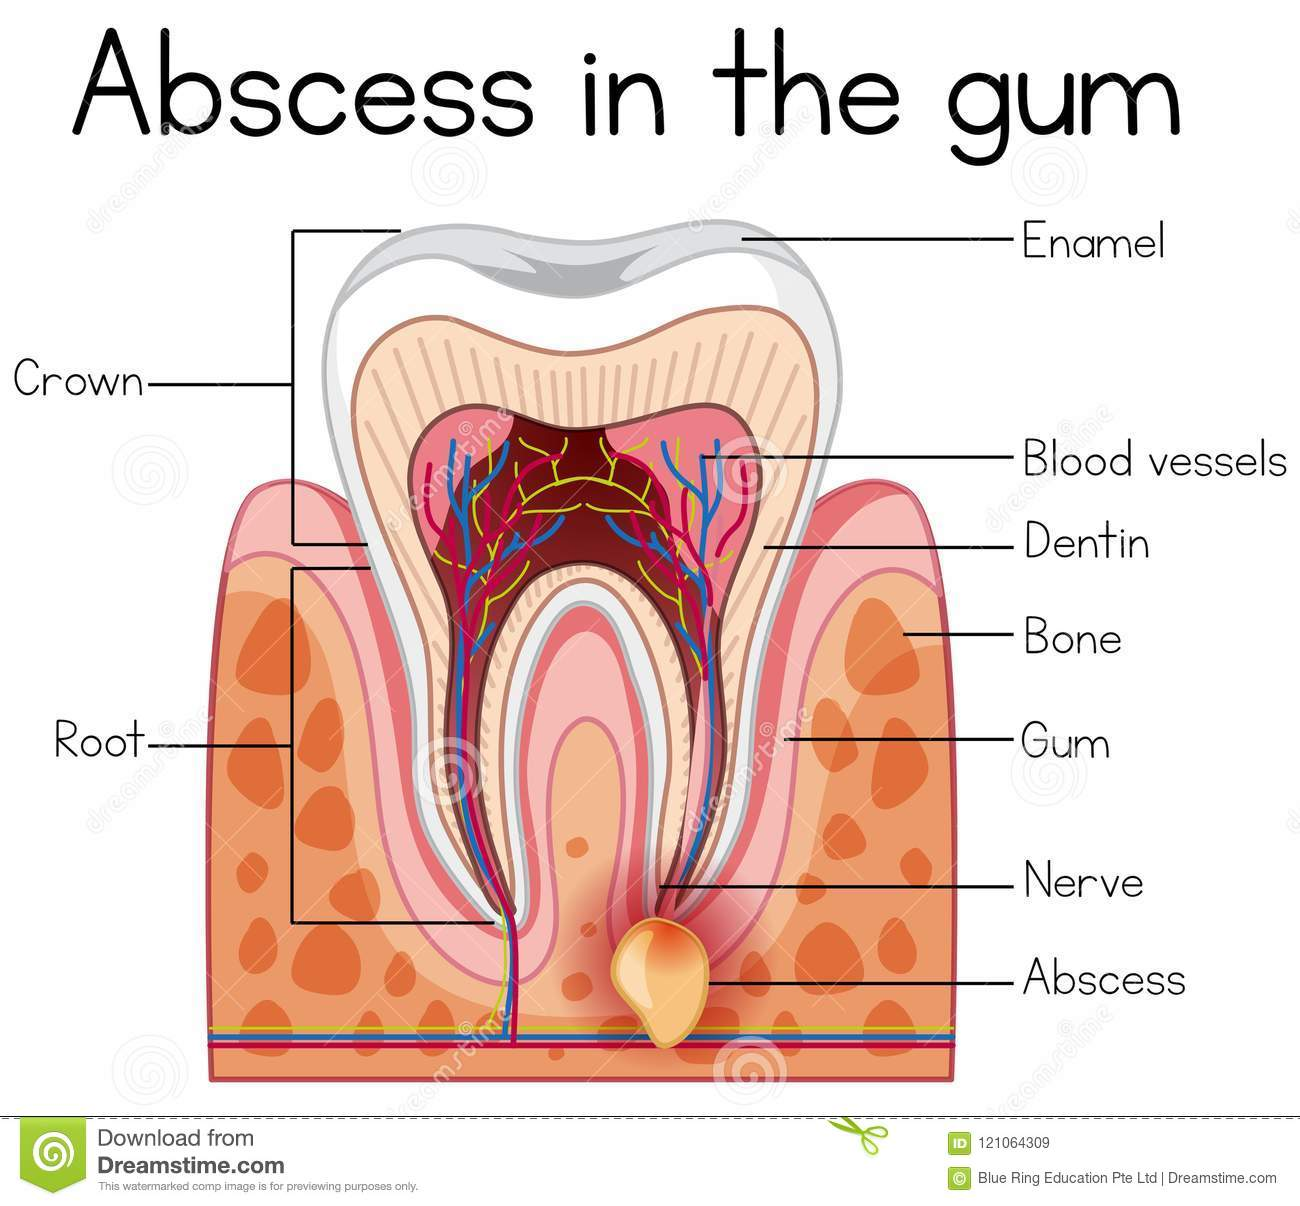 Abscess in the Gum Diagram